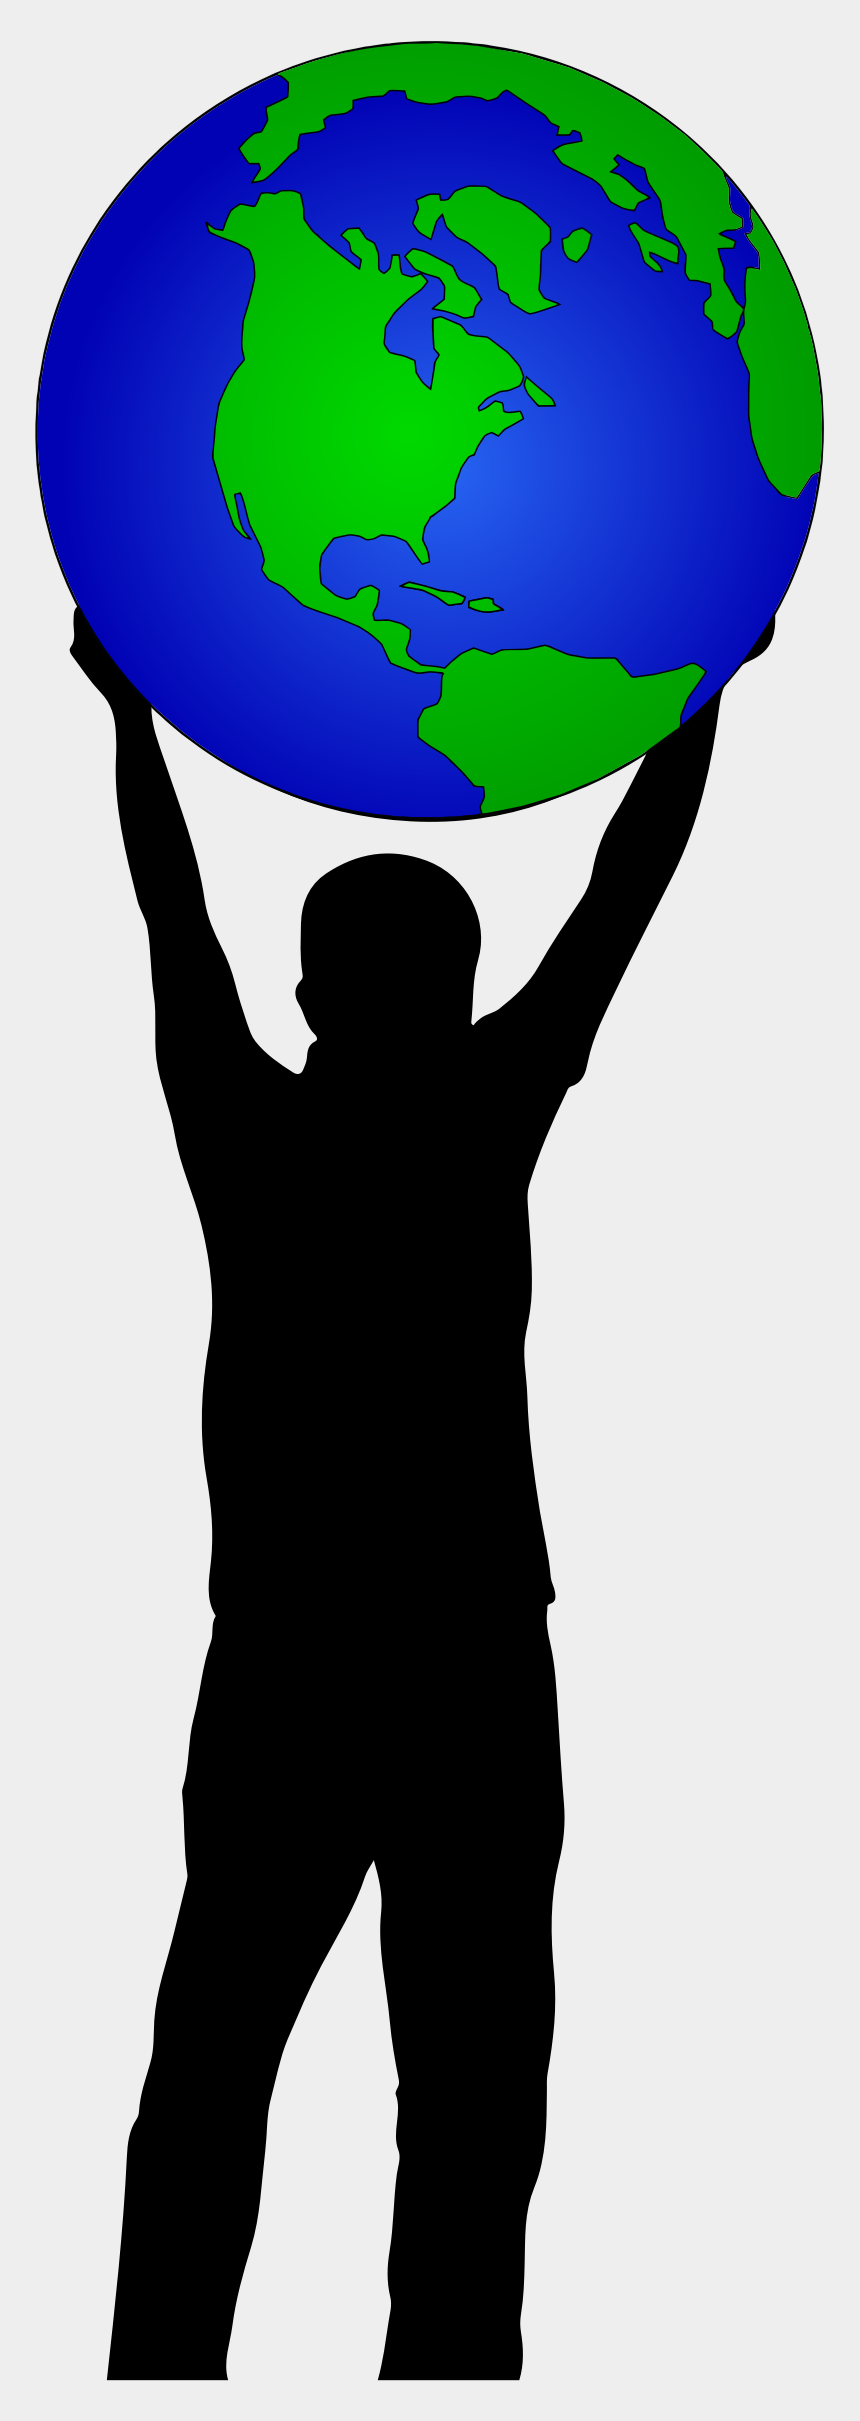 people around the world clipart, Cartoons - Clipart World Person - Holding Up The World Clipart